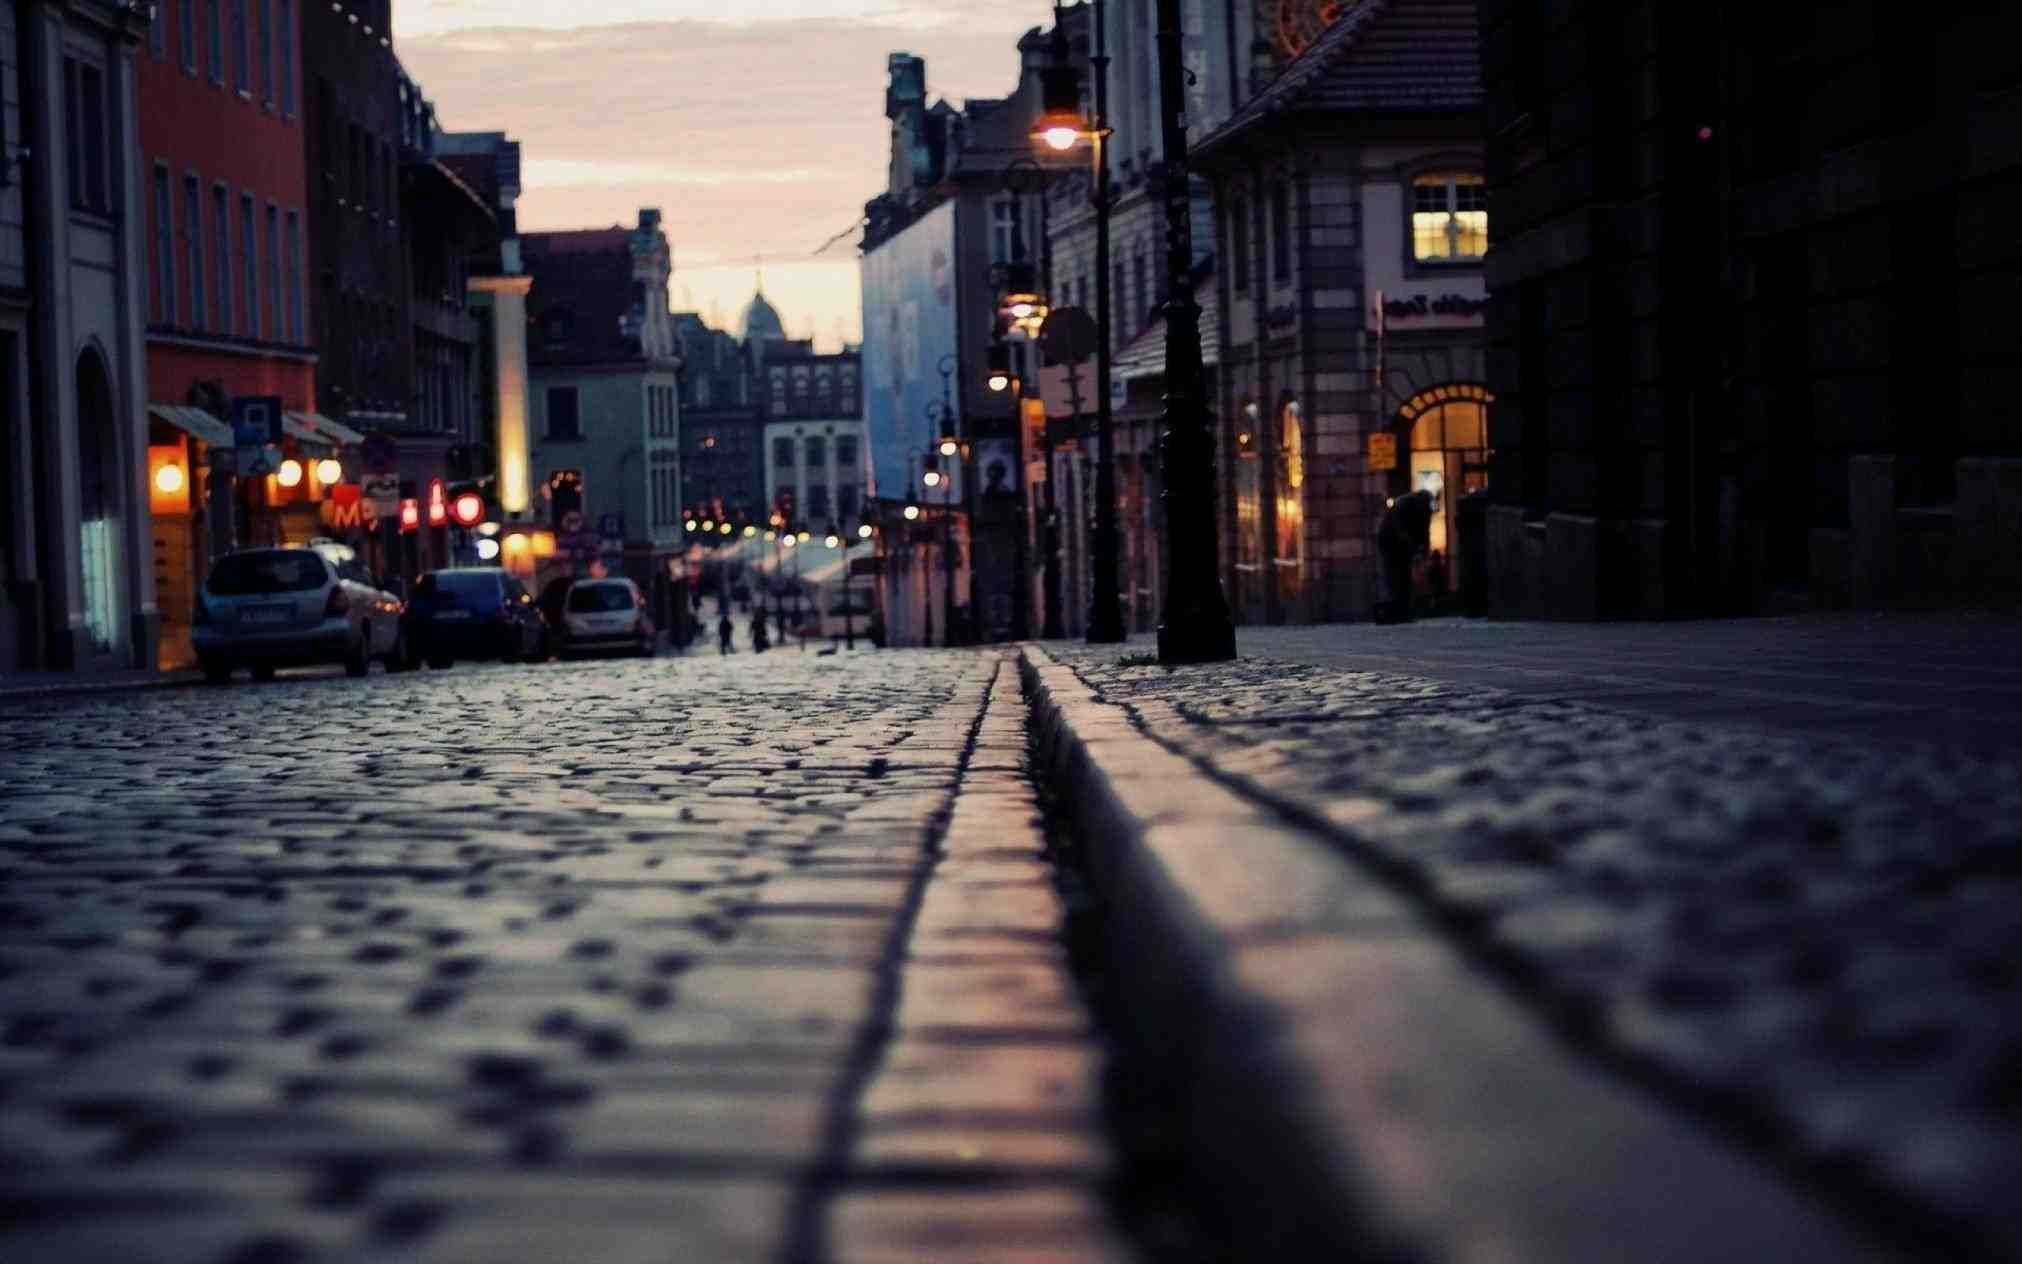 2022x1264 london streets at night - Google Search City Streets, Hd Wallpaper, Funny  Pictures,